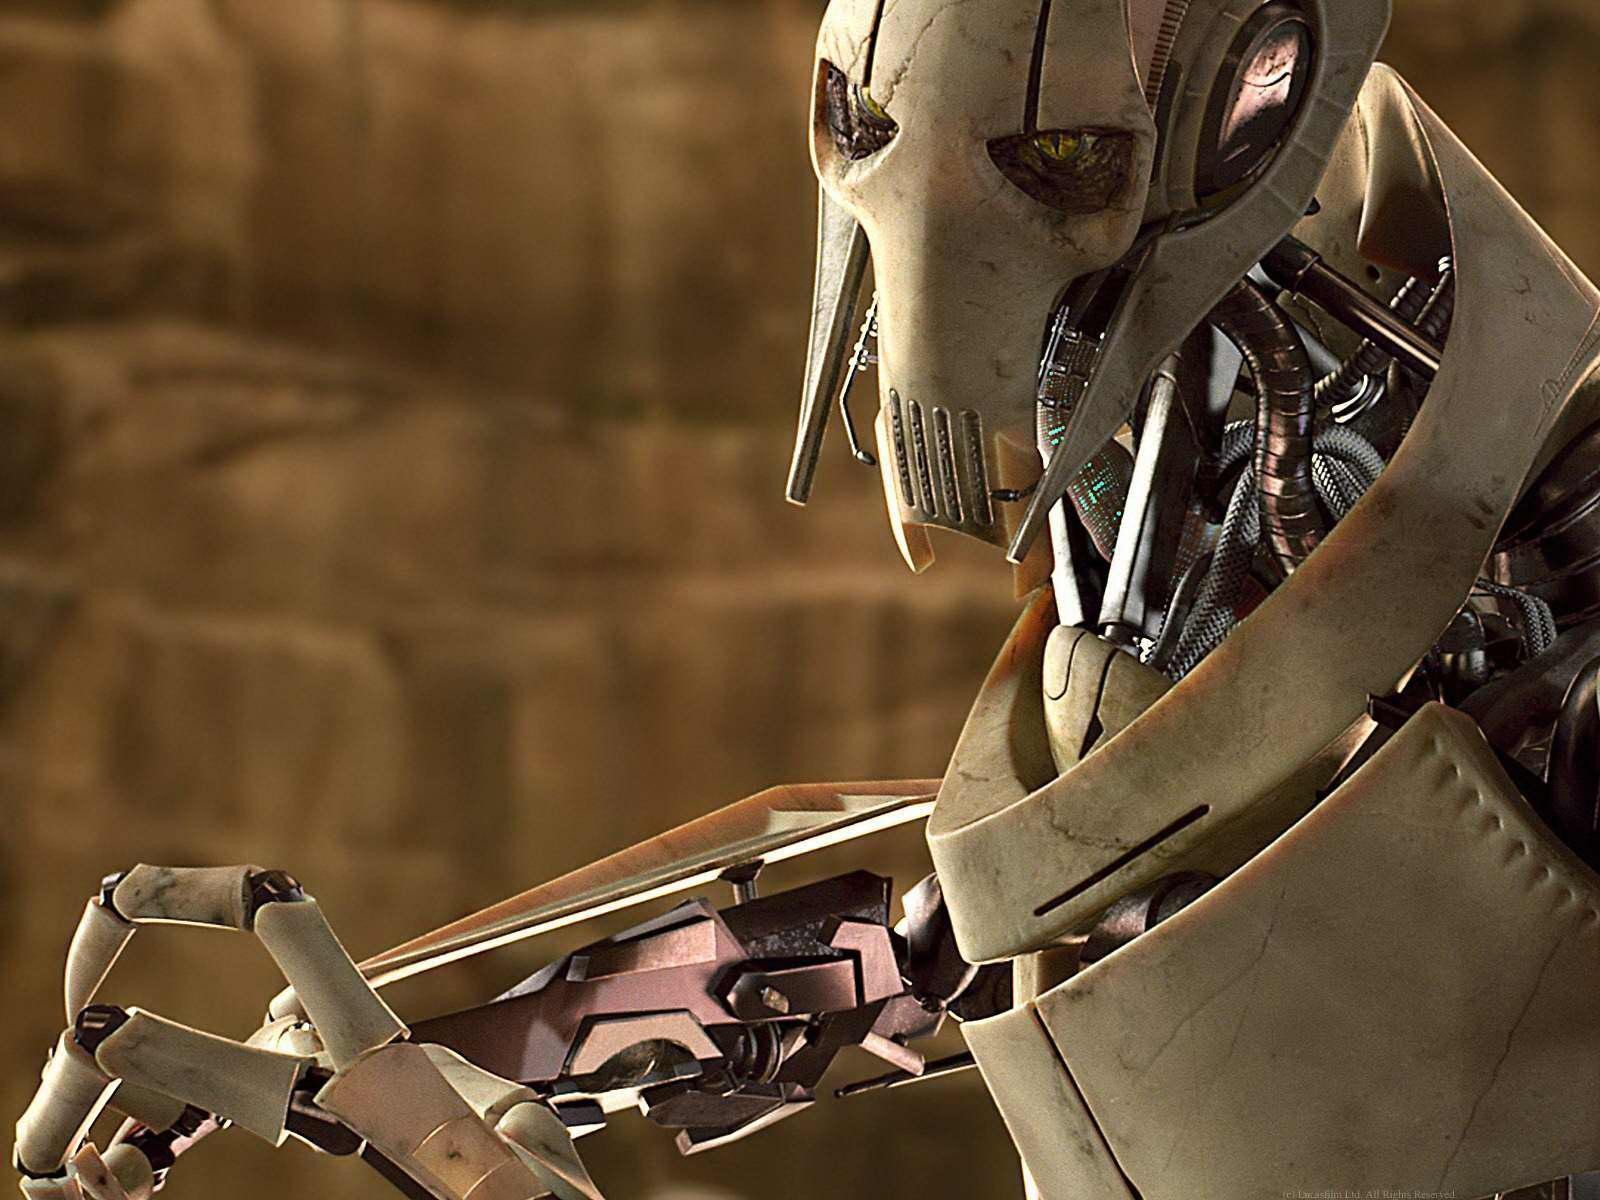 Lego Star Wars Wallpaper Hd Why Does General Grievous Face Mask Have 3 Audio Holes At